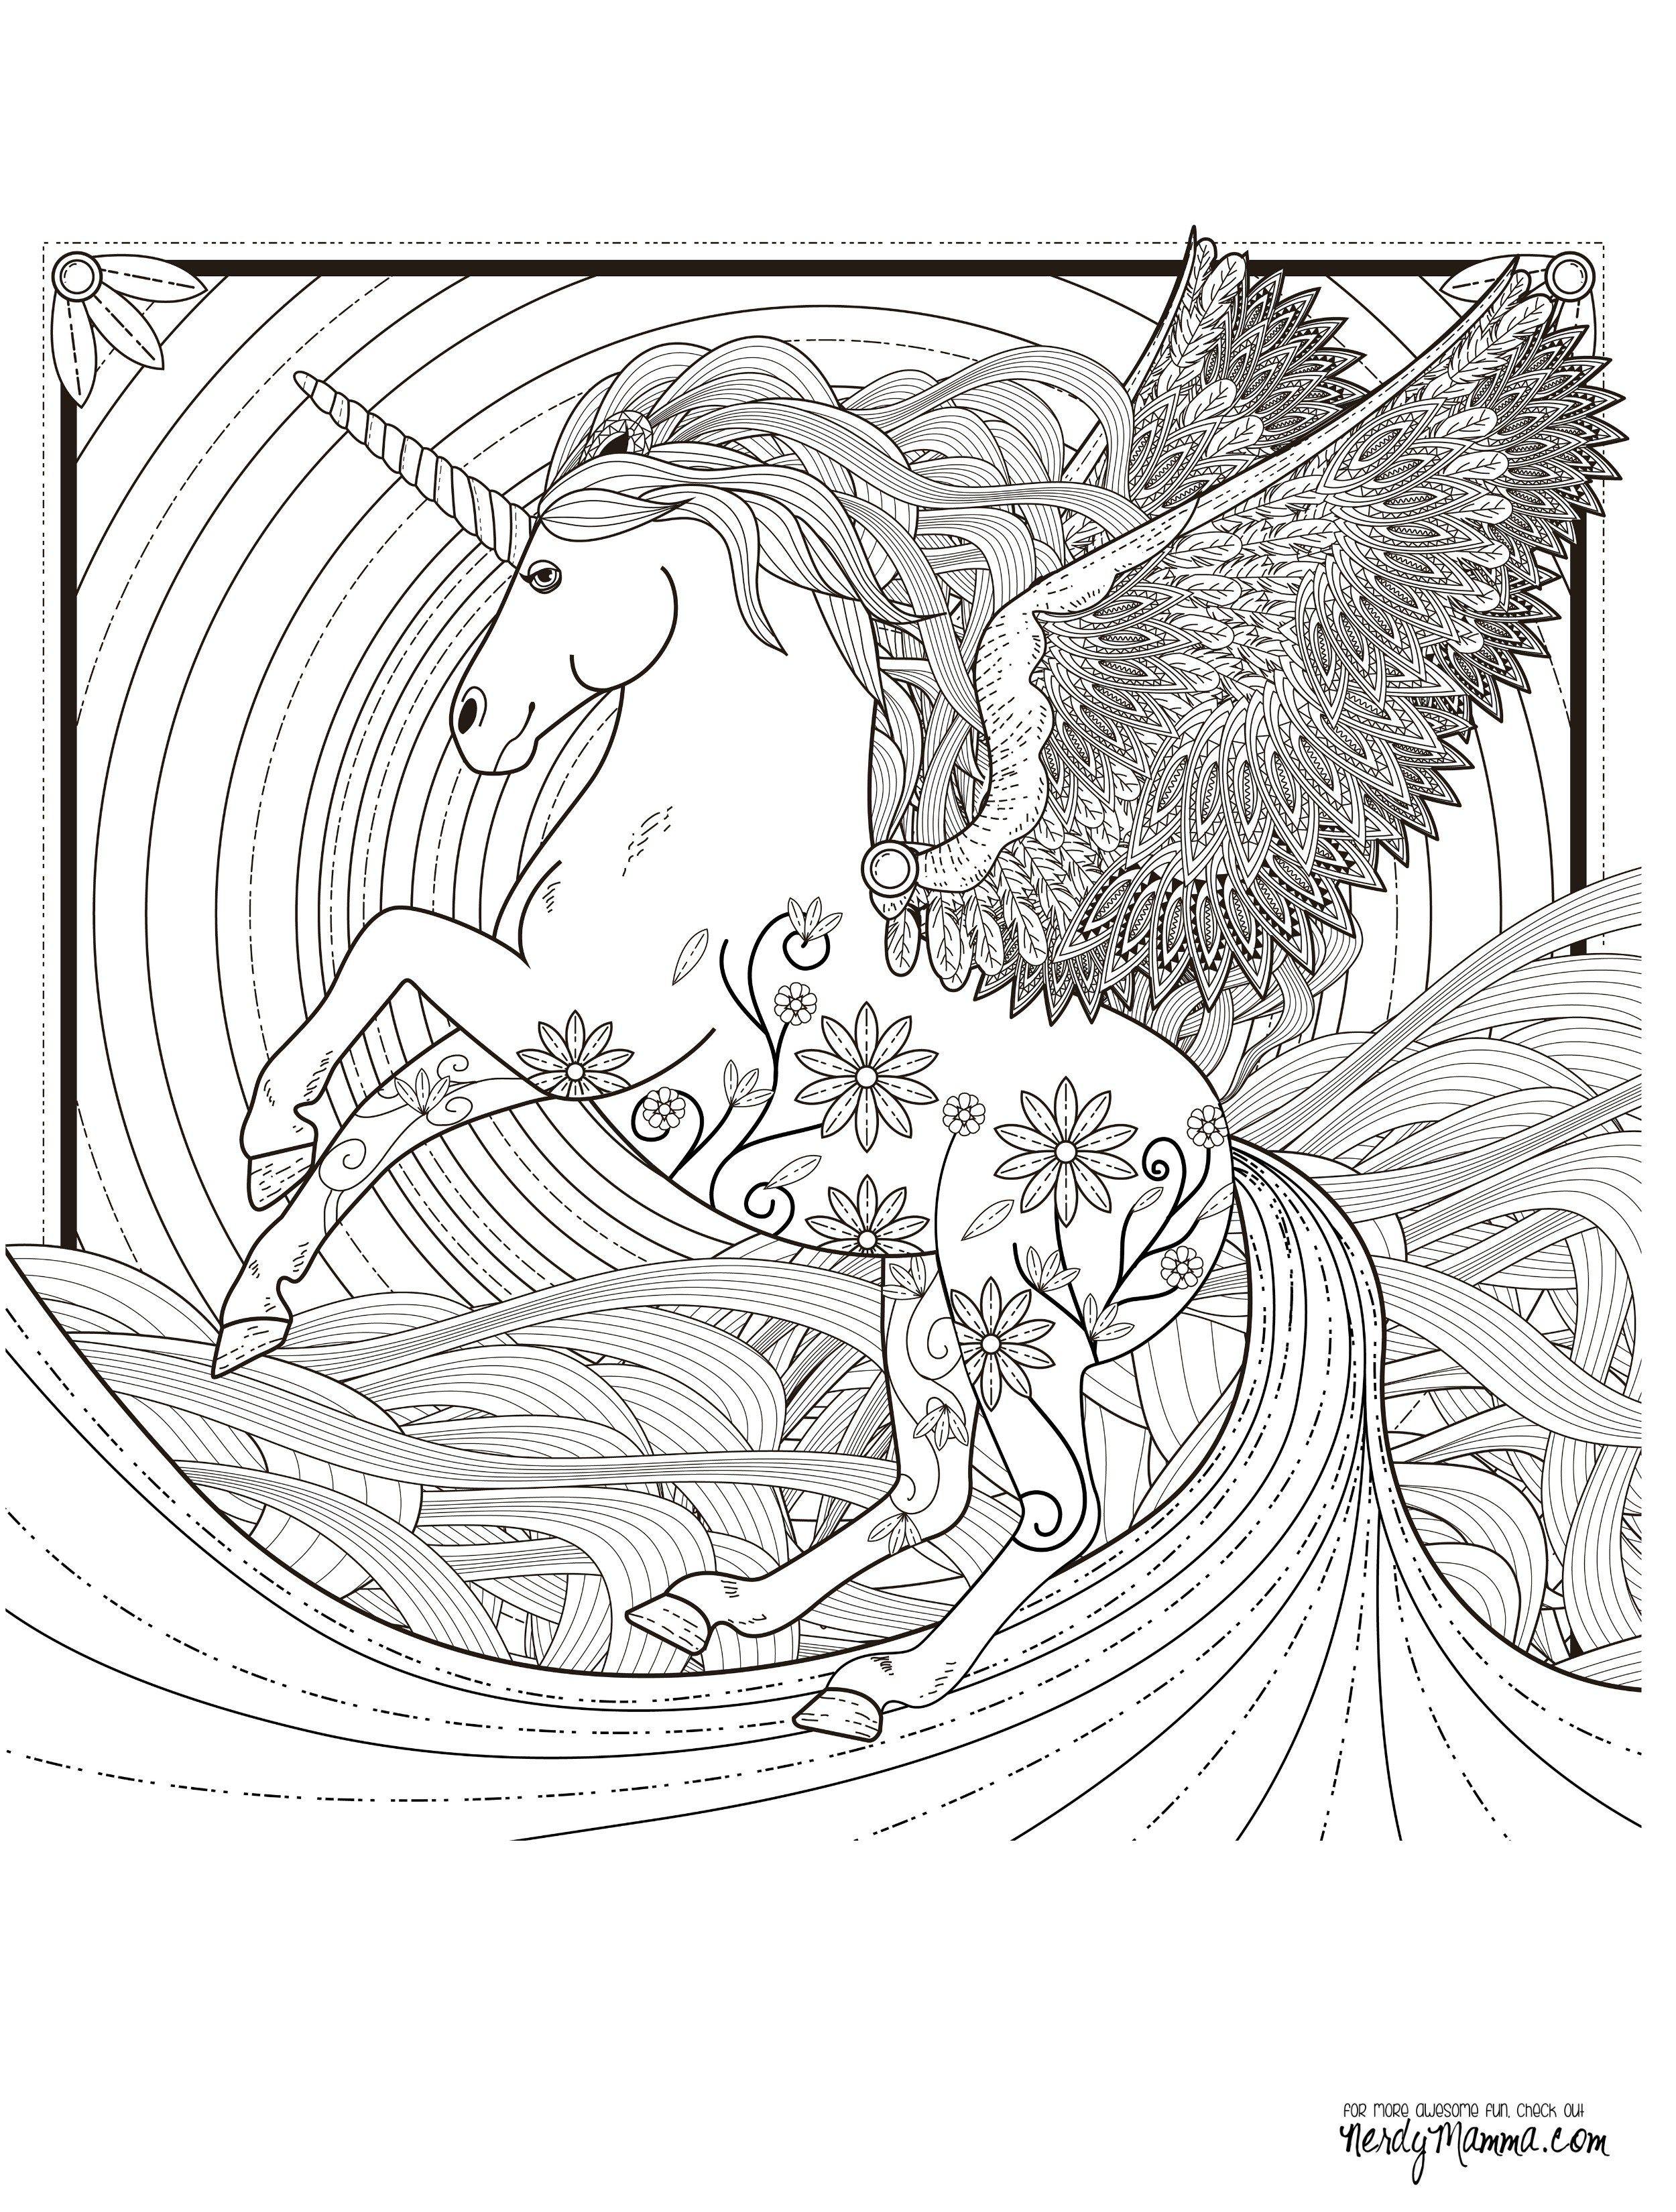 detailed unicorn coloring pages - 11 free printable adult coloring pages adult coloring